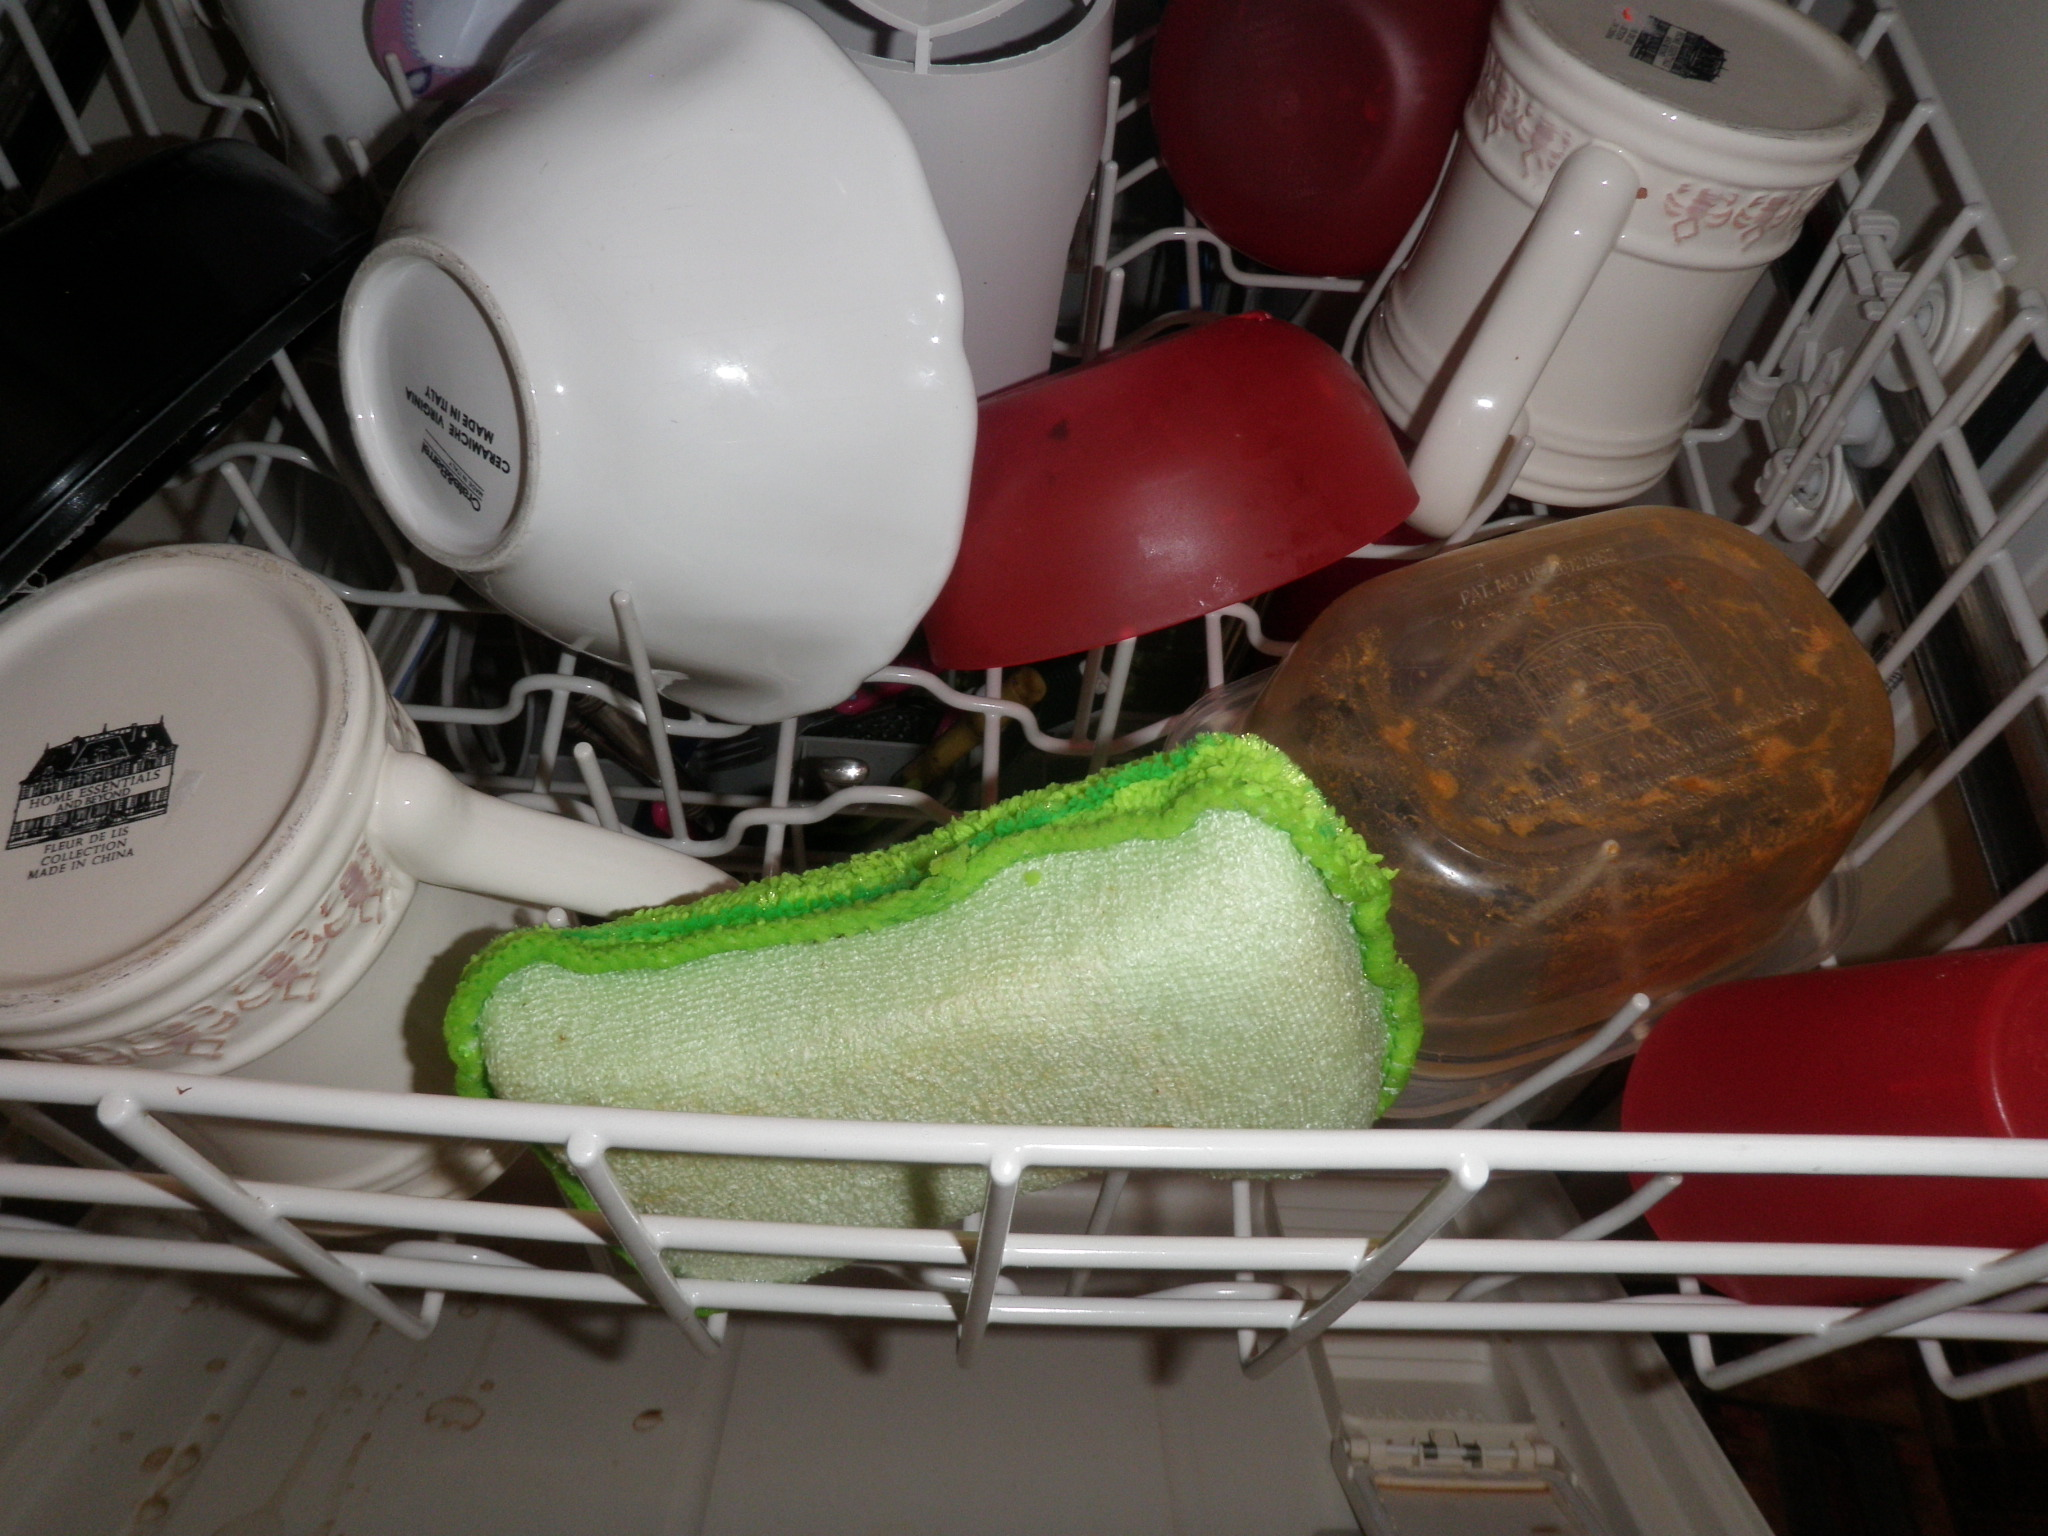 Sanitize sponges in the dishwasher